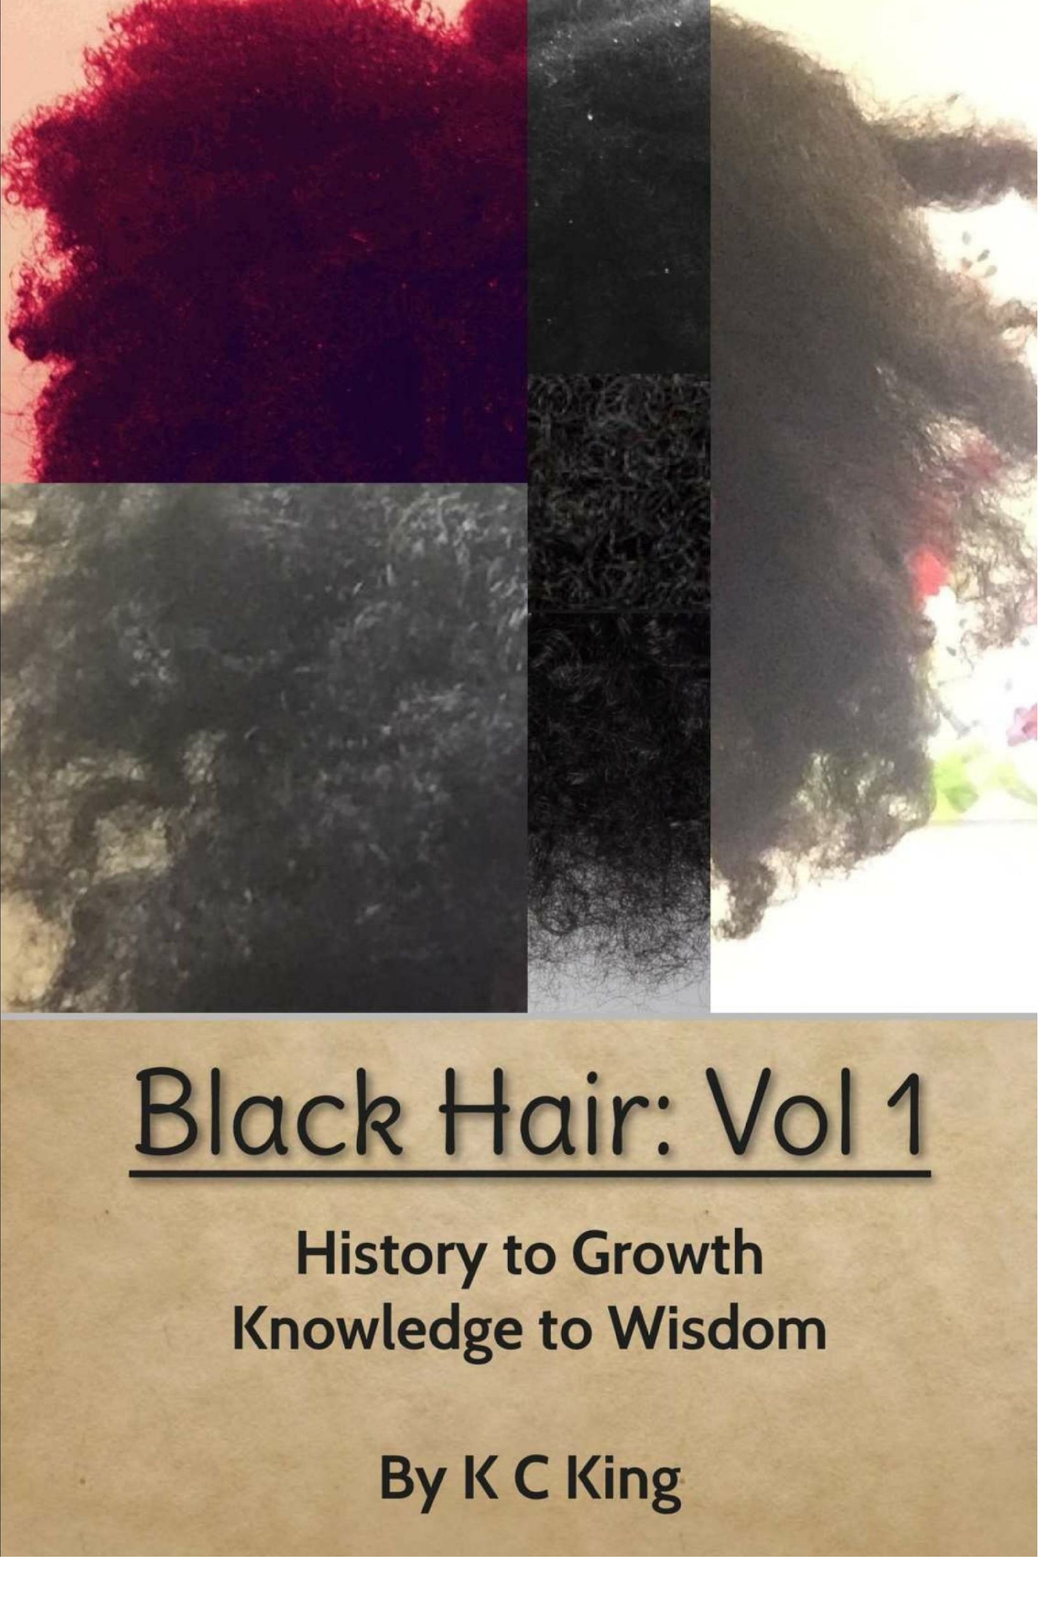 Black Hair: (Vol 1) History to Growth. Knowledge to Wisdom.